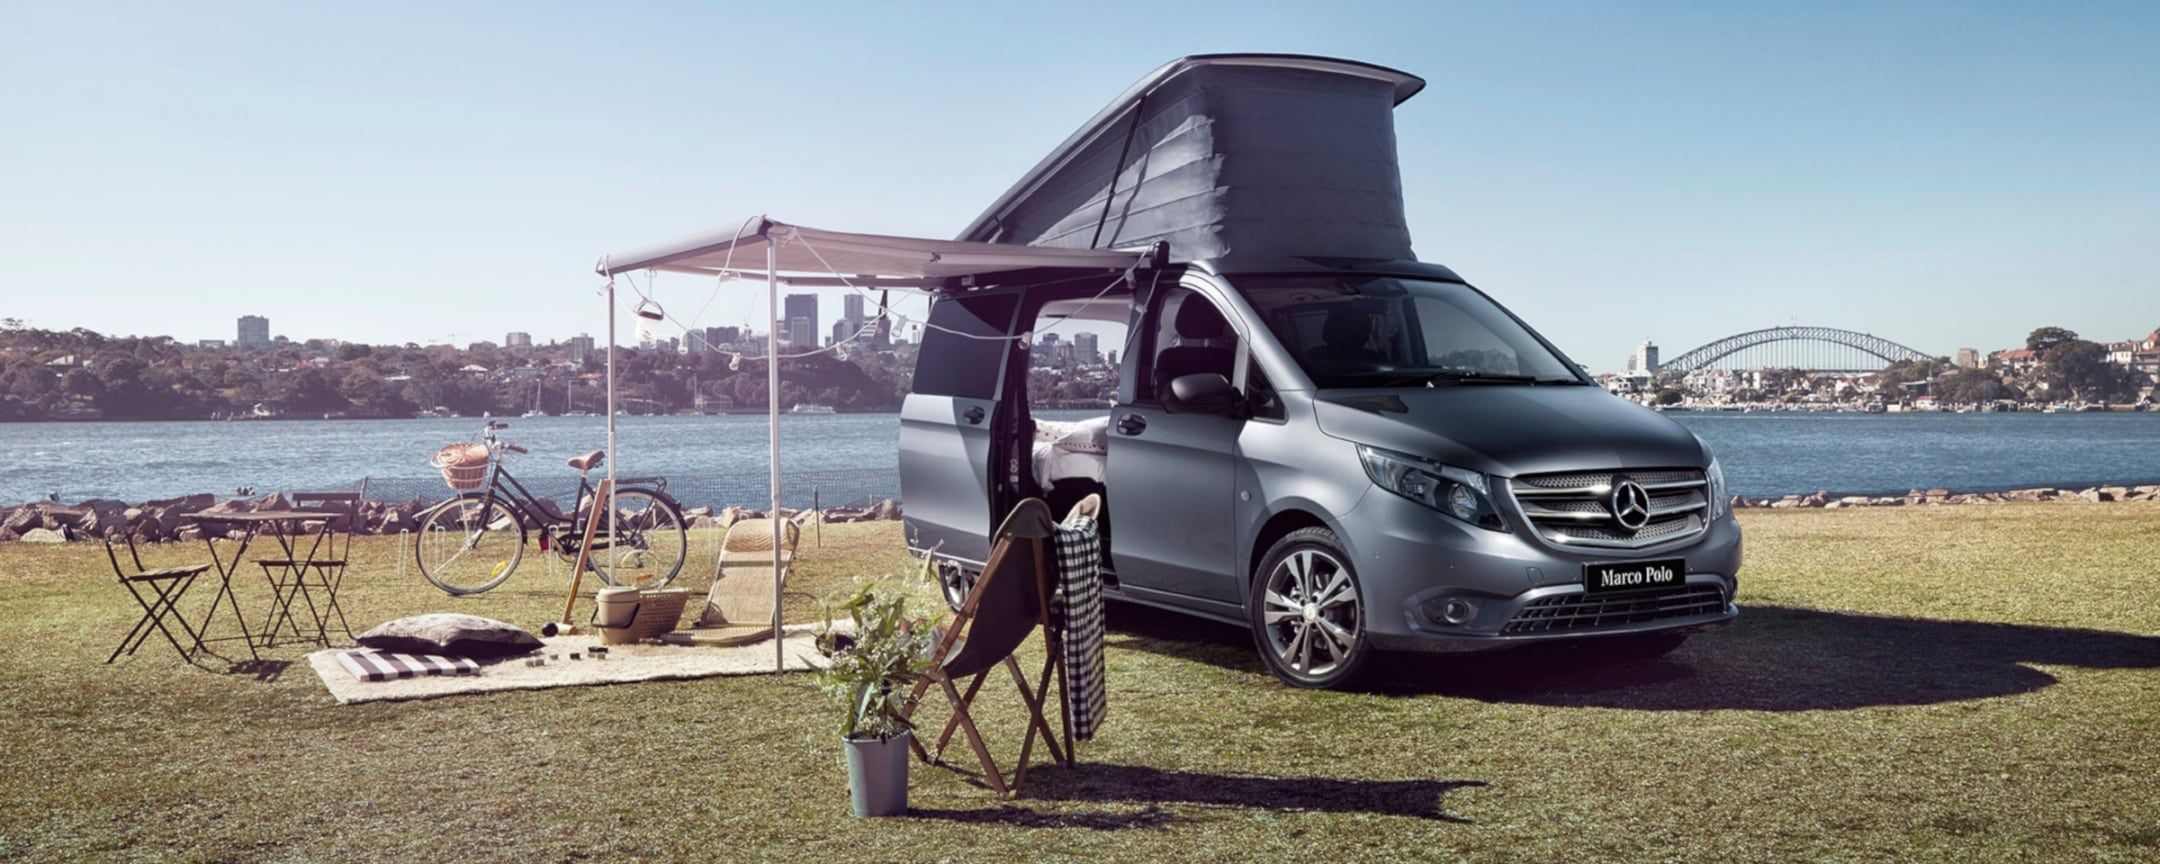 Vans, Love your work, Luxury glamping on cockatoo island, Marco polo ACTIVITY